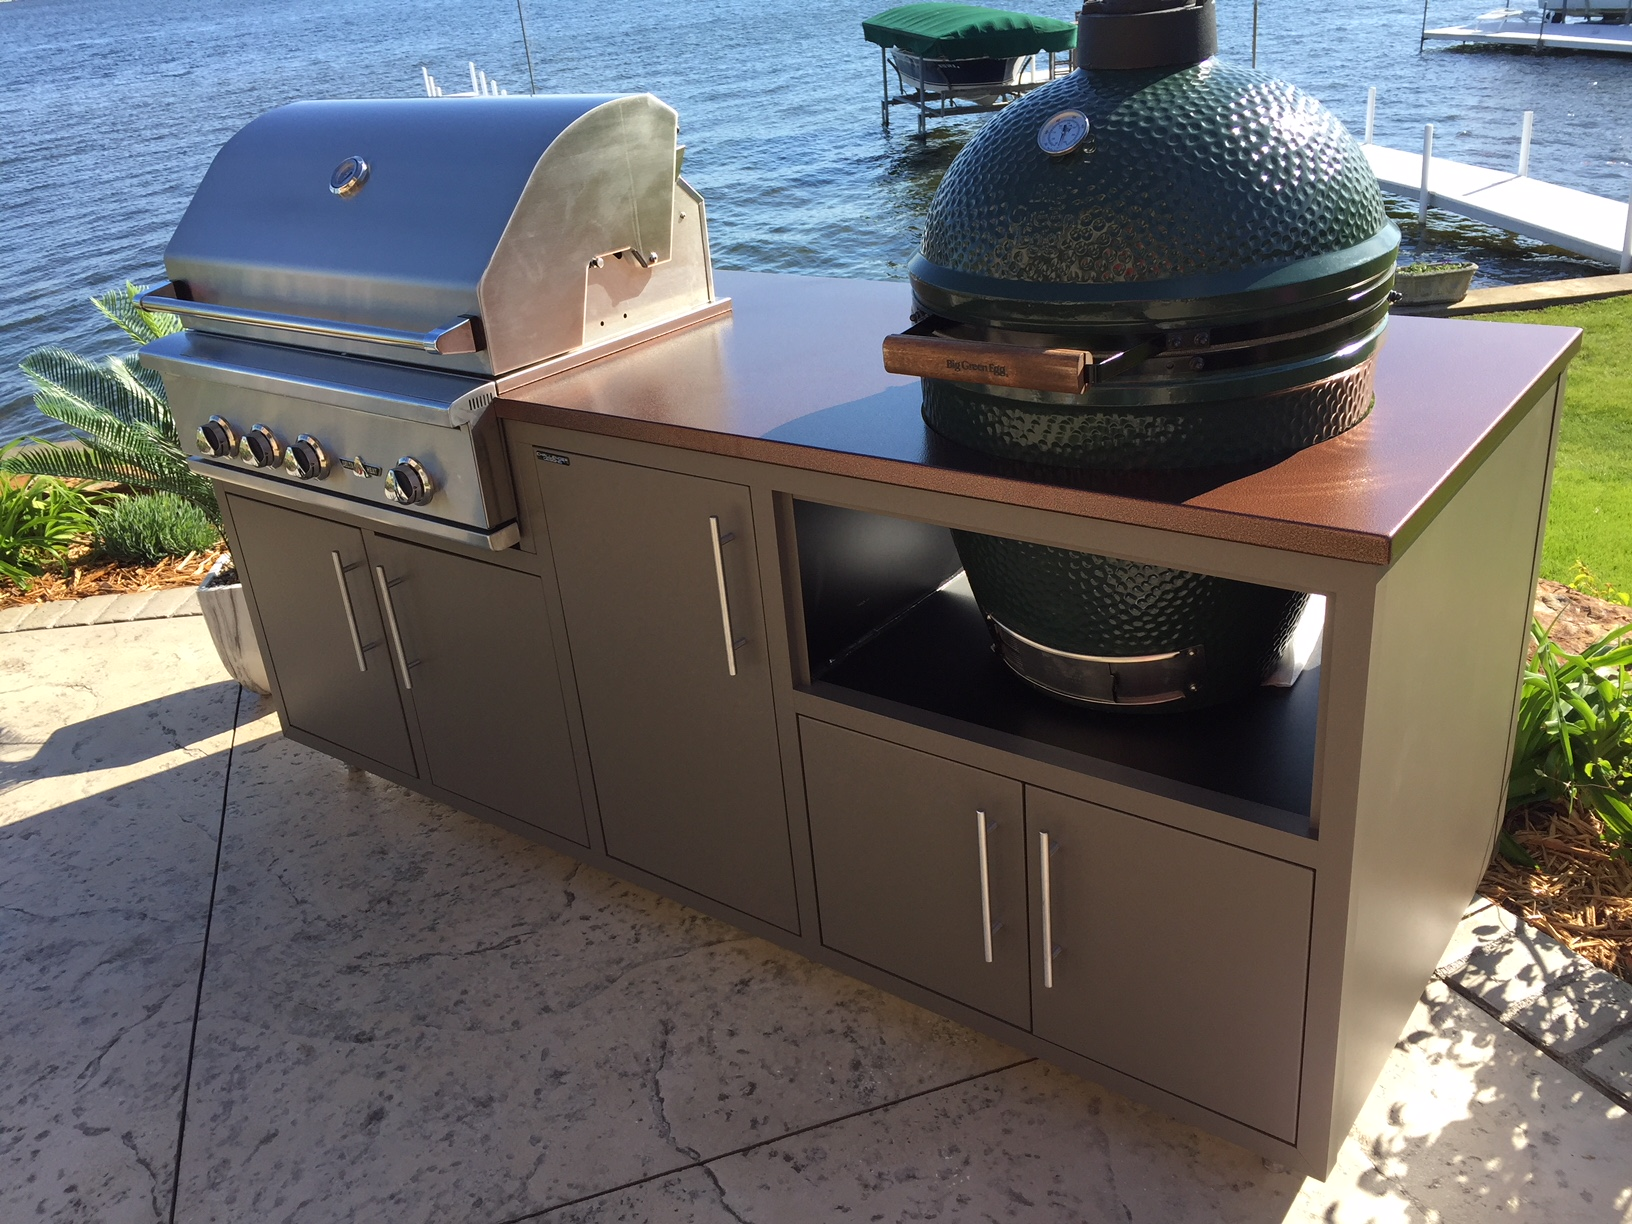 """82"""" Coastal Challenger Kitchen w/ Grill + Big Green Egg  (pictured above)  • Delta Heat 32"""" gas grill + vinyl cover  • Large Big Green Egg  • Storage  • BGE Accessories included: vinyl cover, ash tool, grid lifter, ConvEGGtor, pitt mitt, """"The Lifter"""" and 20lb of lump charcoal  • Price: $6,464.65  • Prattsgiving Deal = $5,564.65 (this is $900 off regular price!)"""